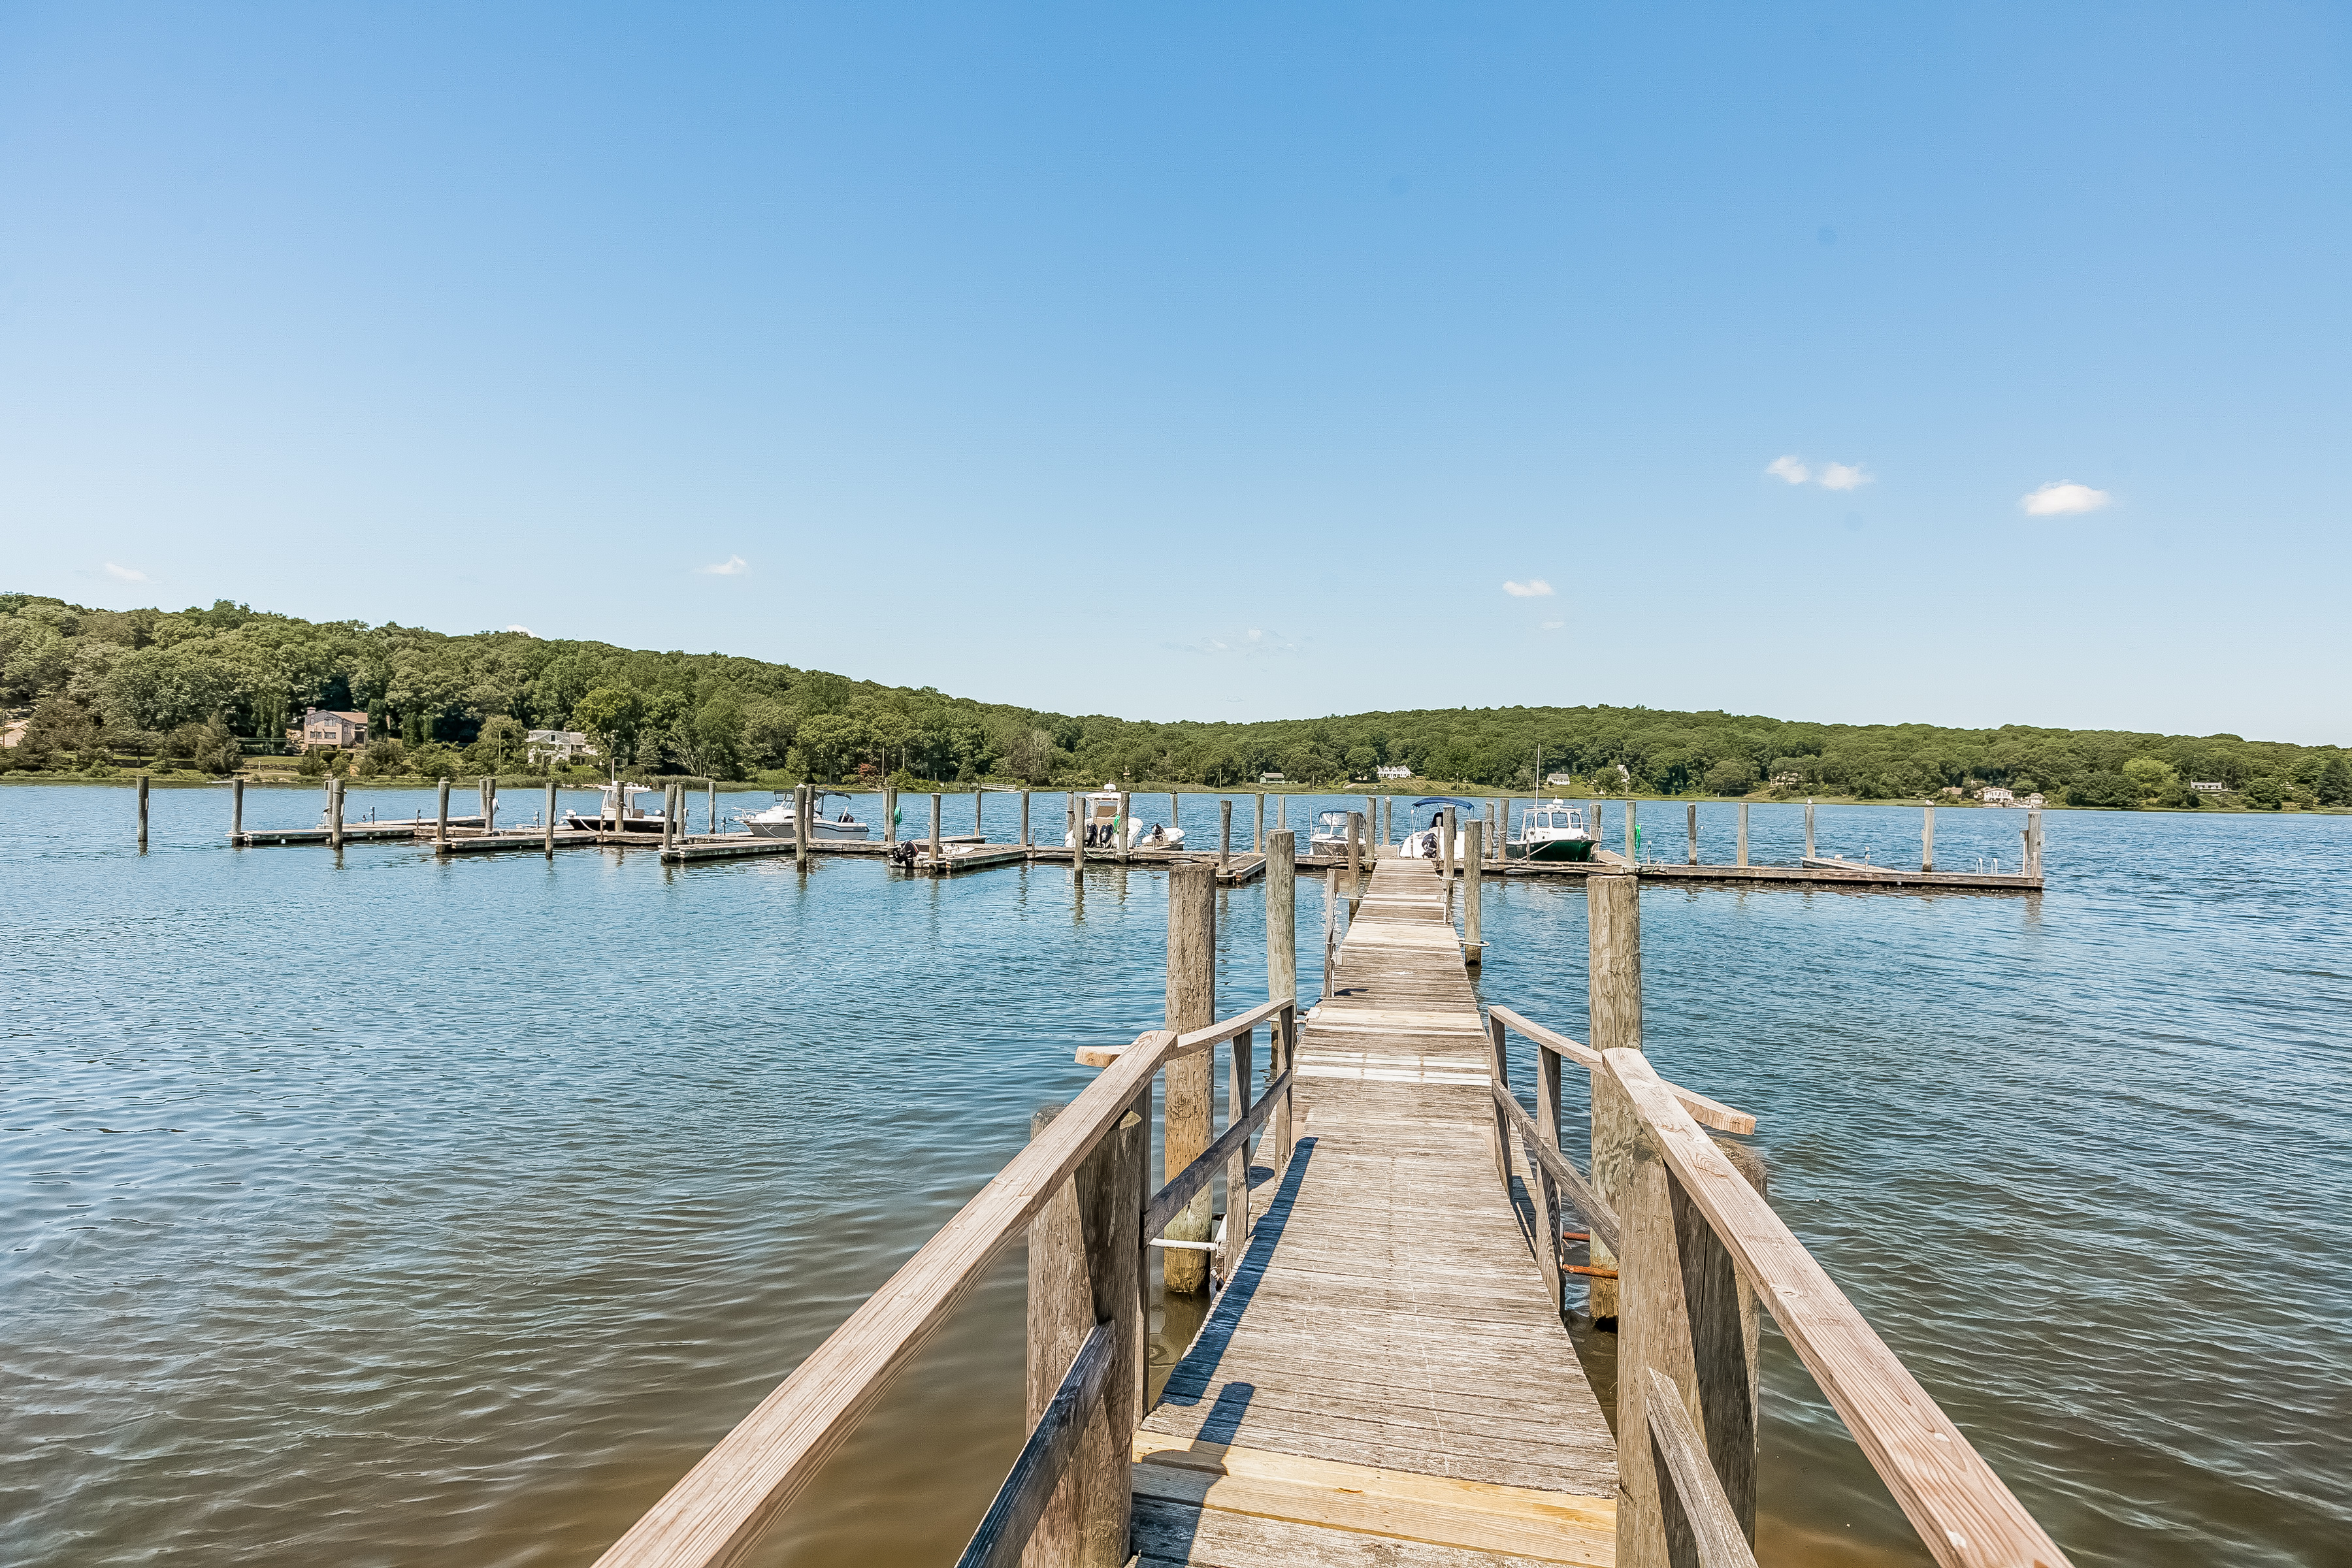 Single Family Home for Sale at Waterfront with Stunning Views 13 Whitehall Landing 13 Stonington, Connecticut 06355 United States